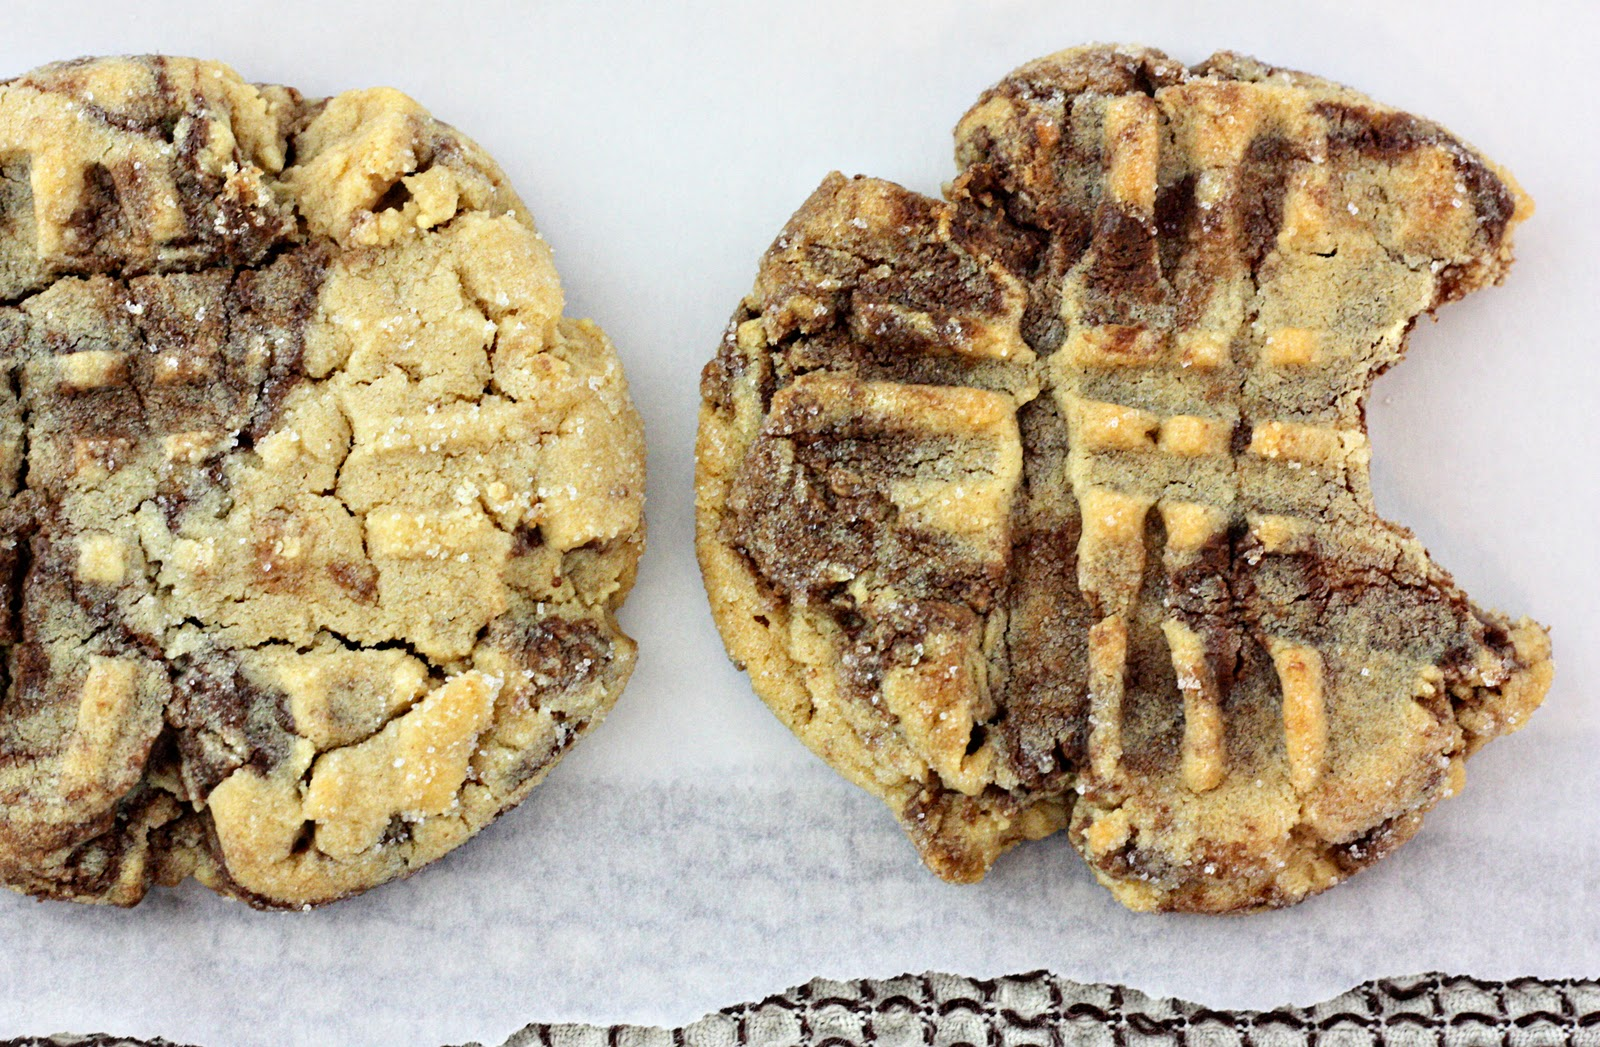 ... : Day 8 - Peanut Butter and Nutella Swirl Cookies - Dining at my Desk